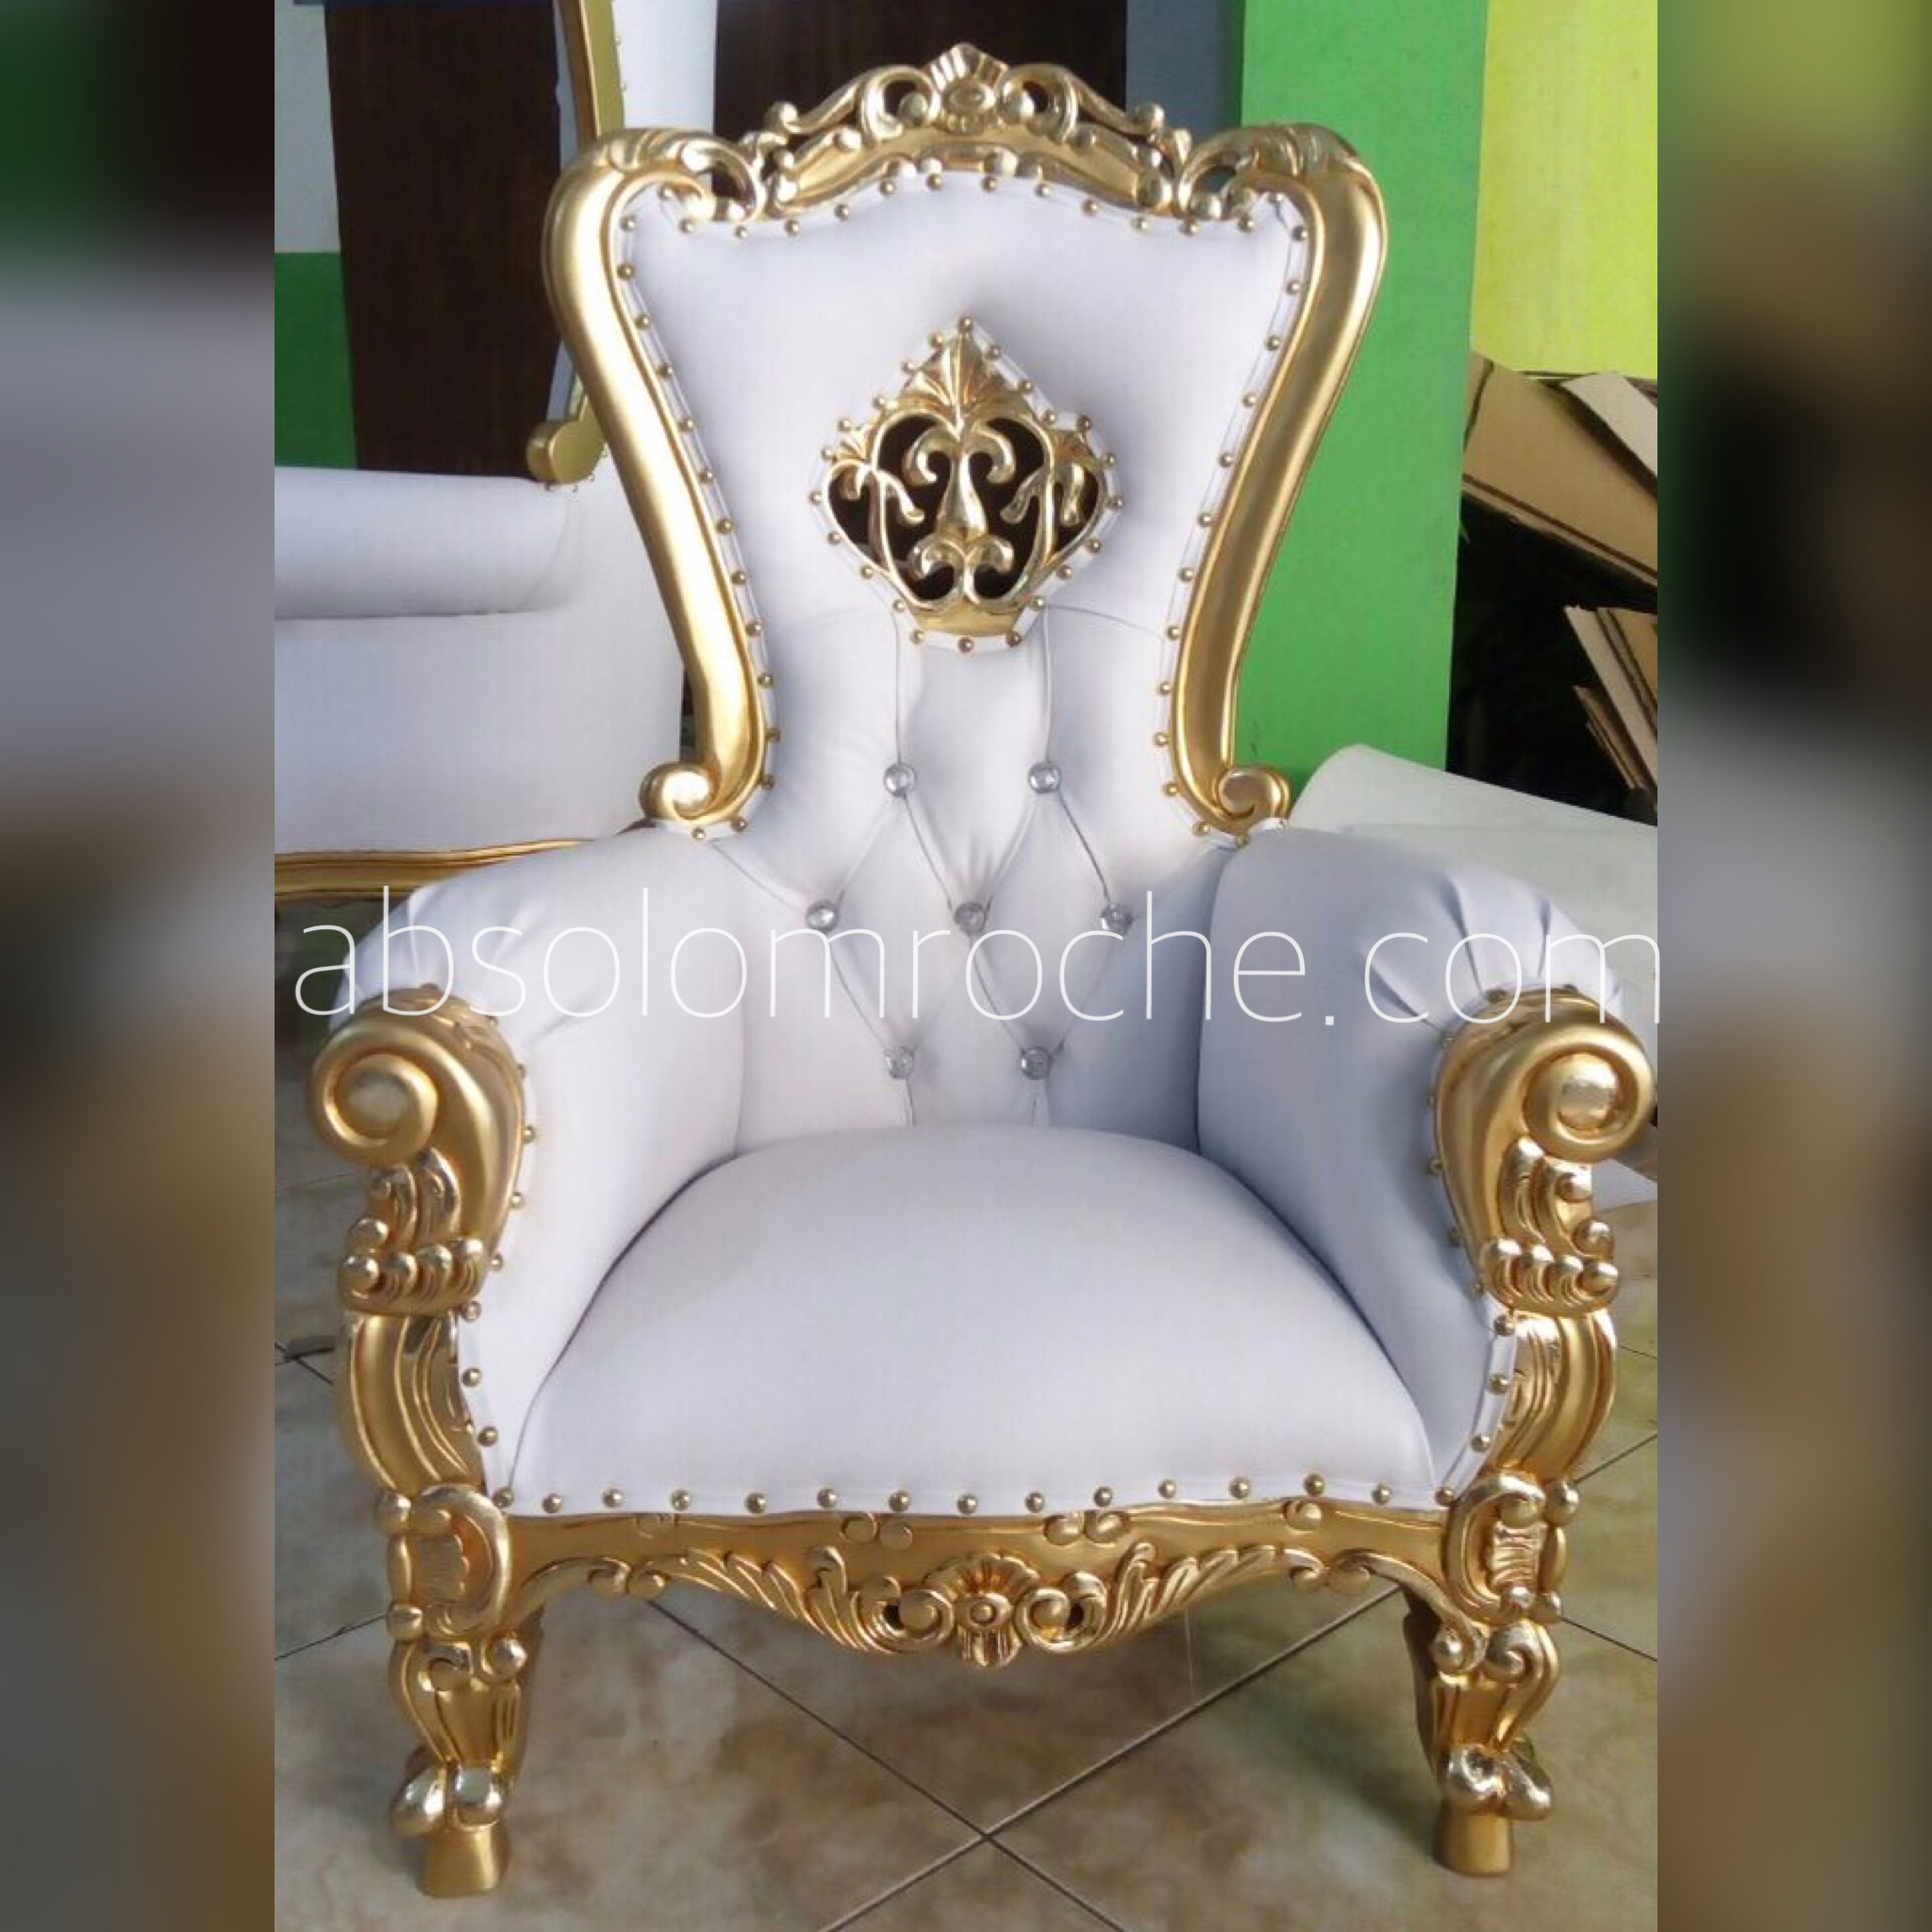 20 off preorder absolom roche marie antoinette crown chair gold